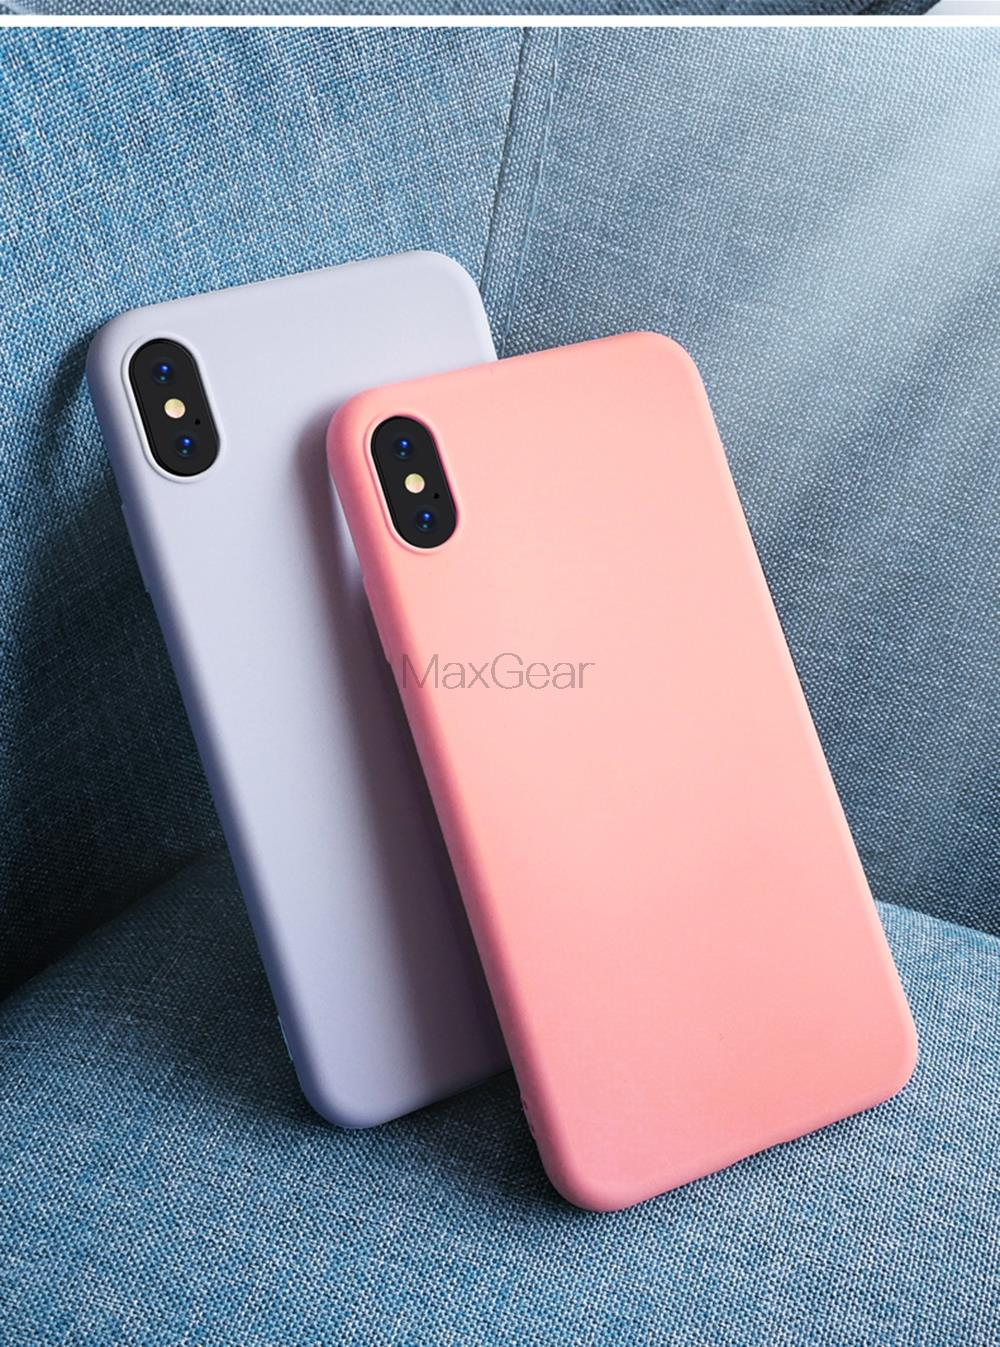 HTB10spuV9zqK1RjSZPxq6A4tVXaX - Thin Soft Case For iPhone 7 8 6 6s Plus 4 5S SE 2 Original Liquid Silicone Cover Candy Coque Capa For iPhone X Xs 11 Pro Max XR